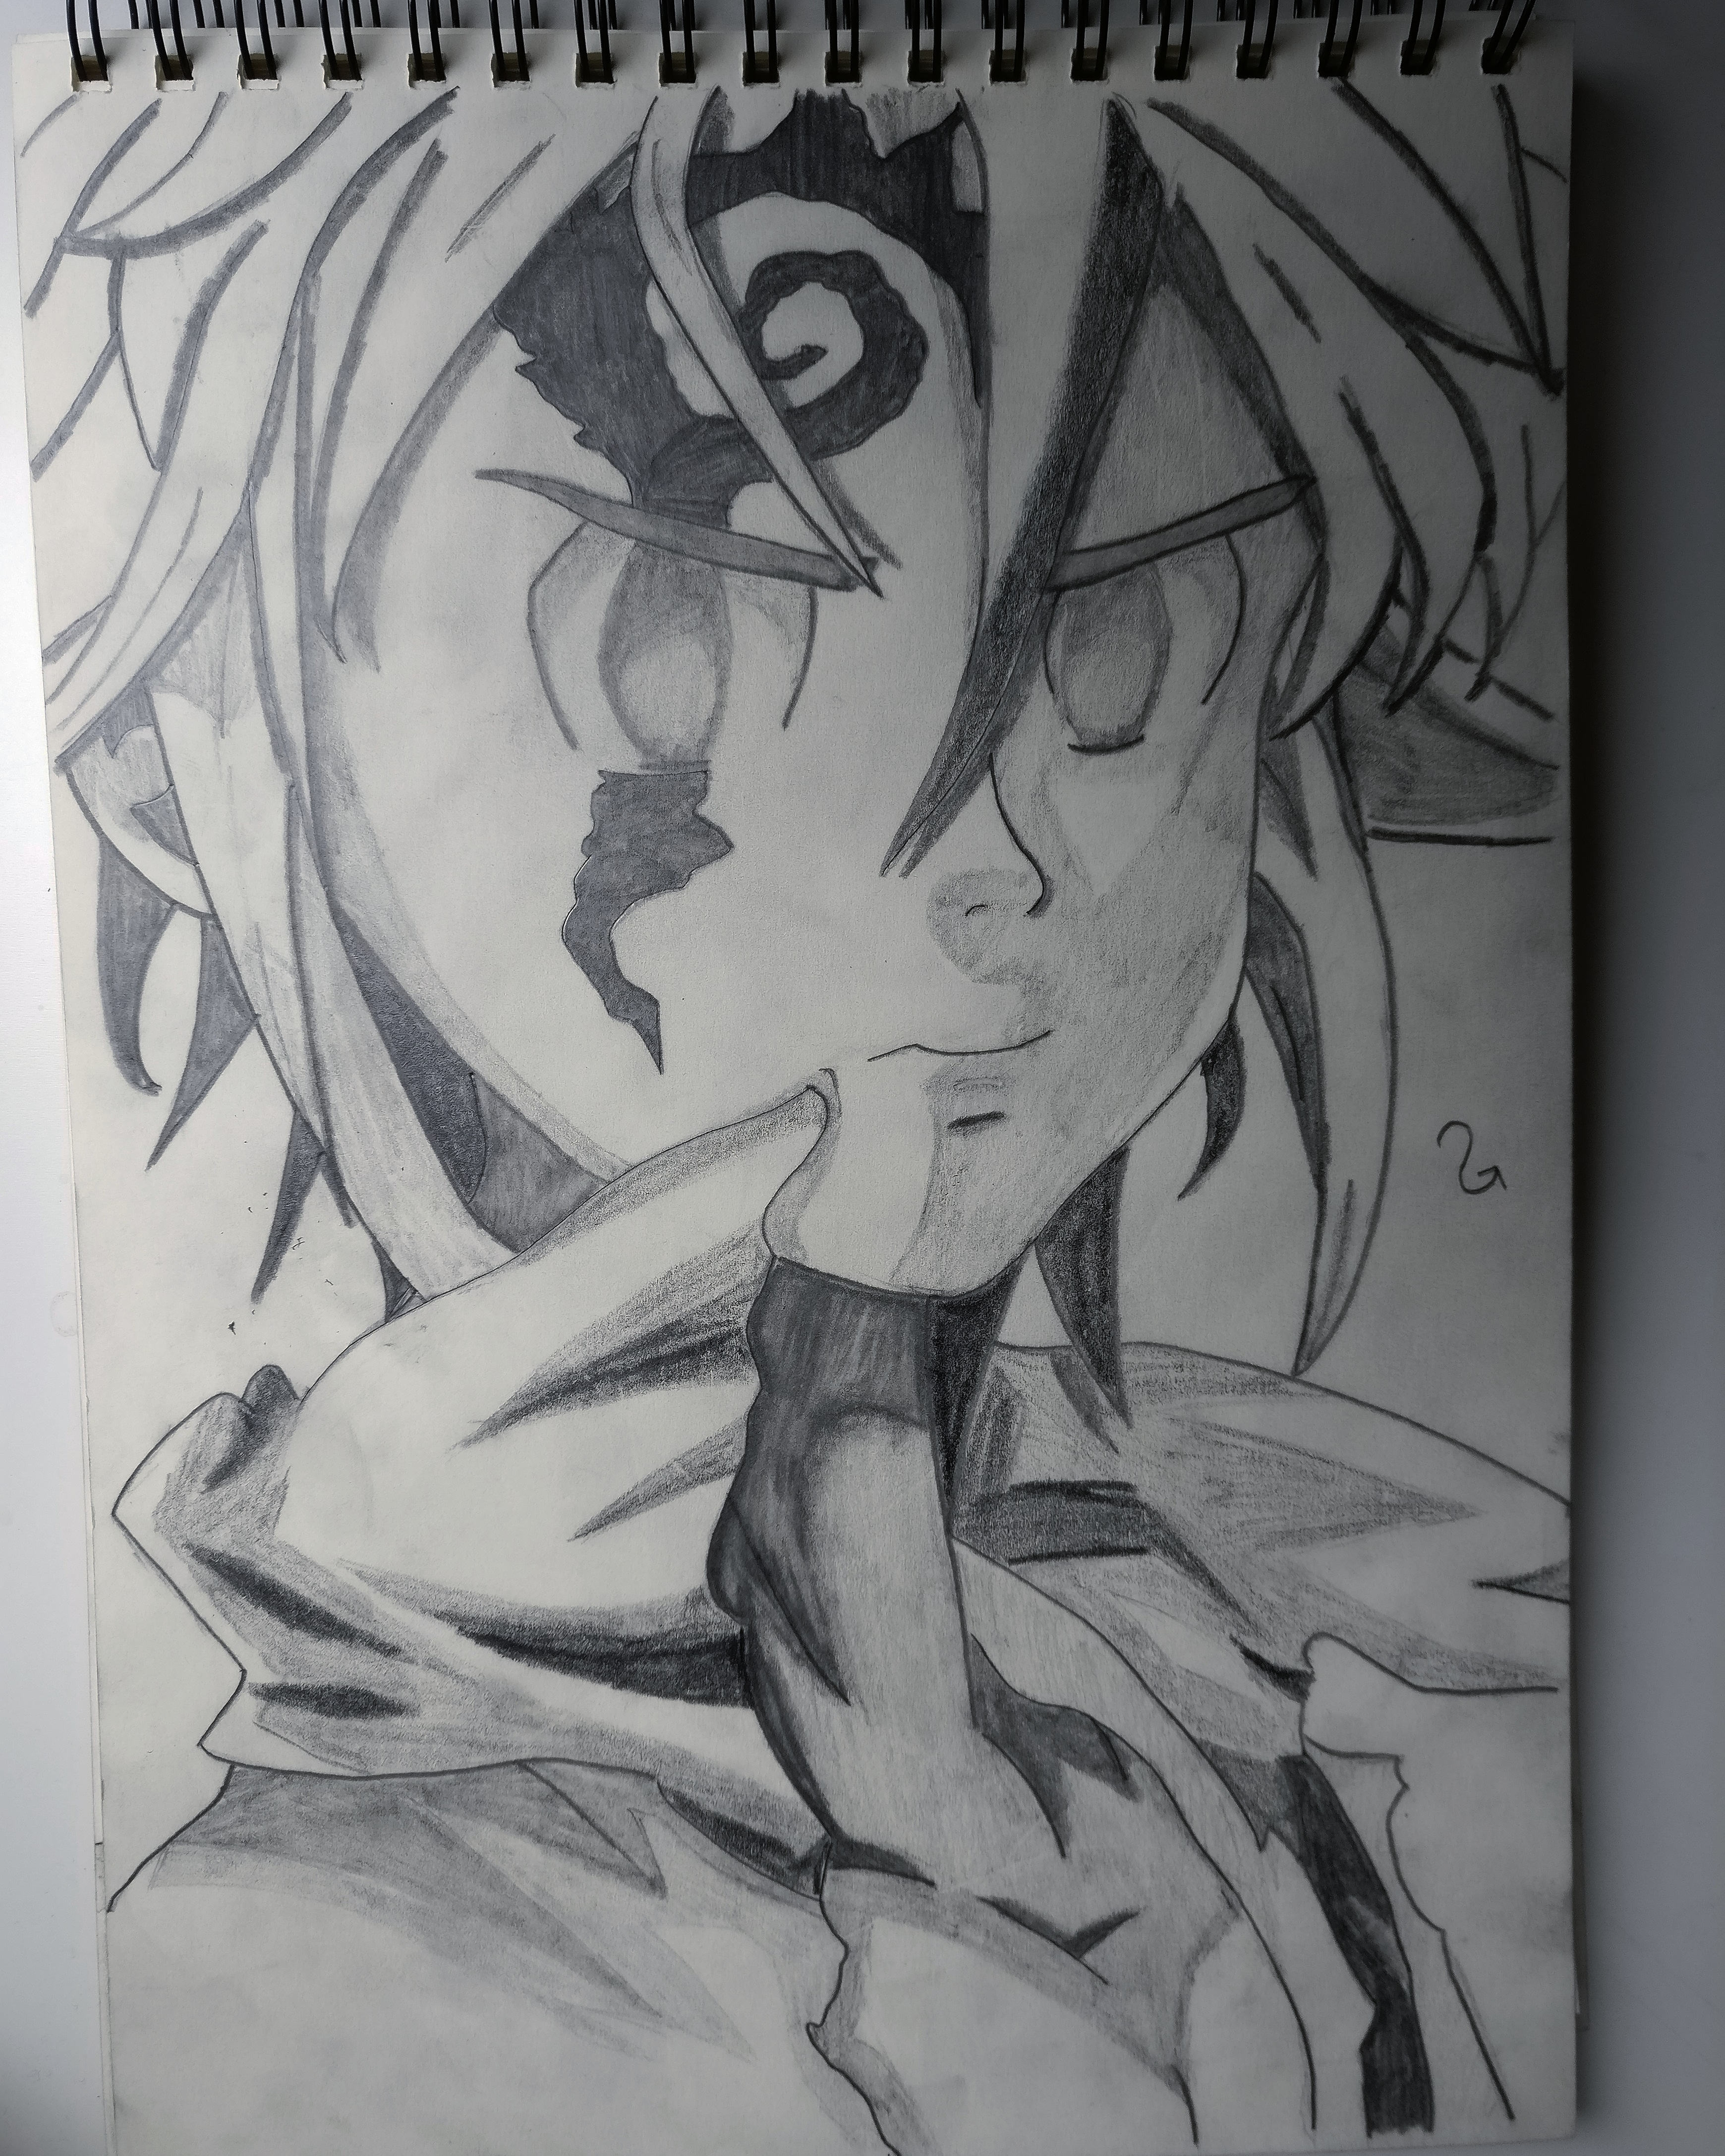 clip freeuse download Meliodas drawing. My submission is a.